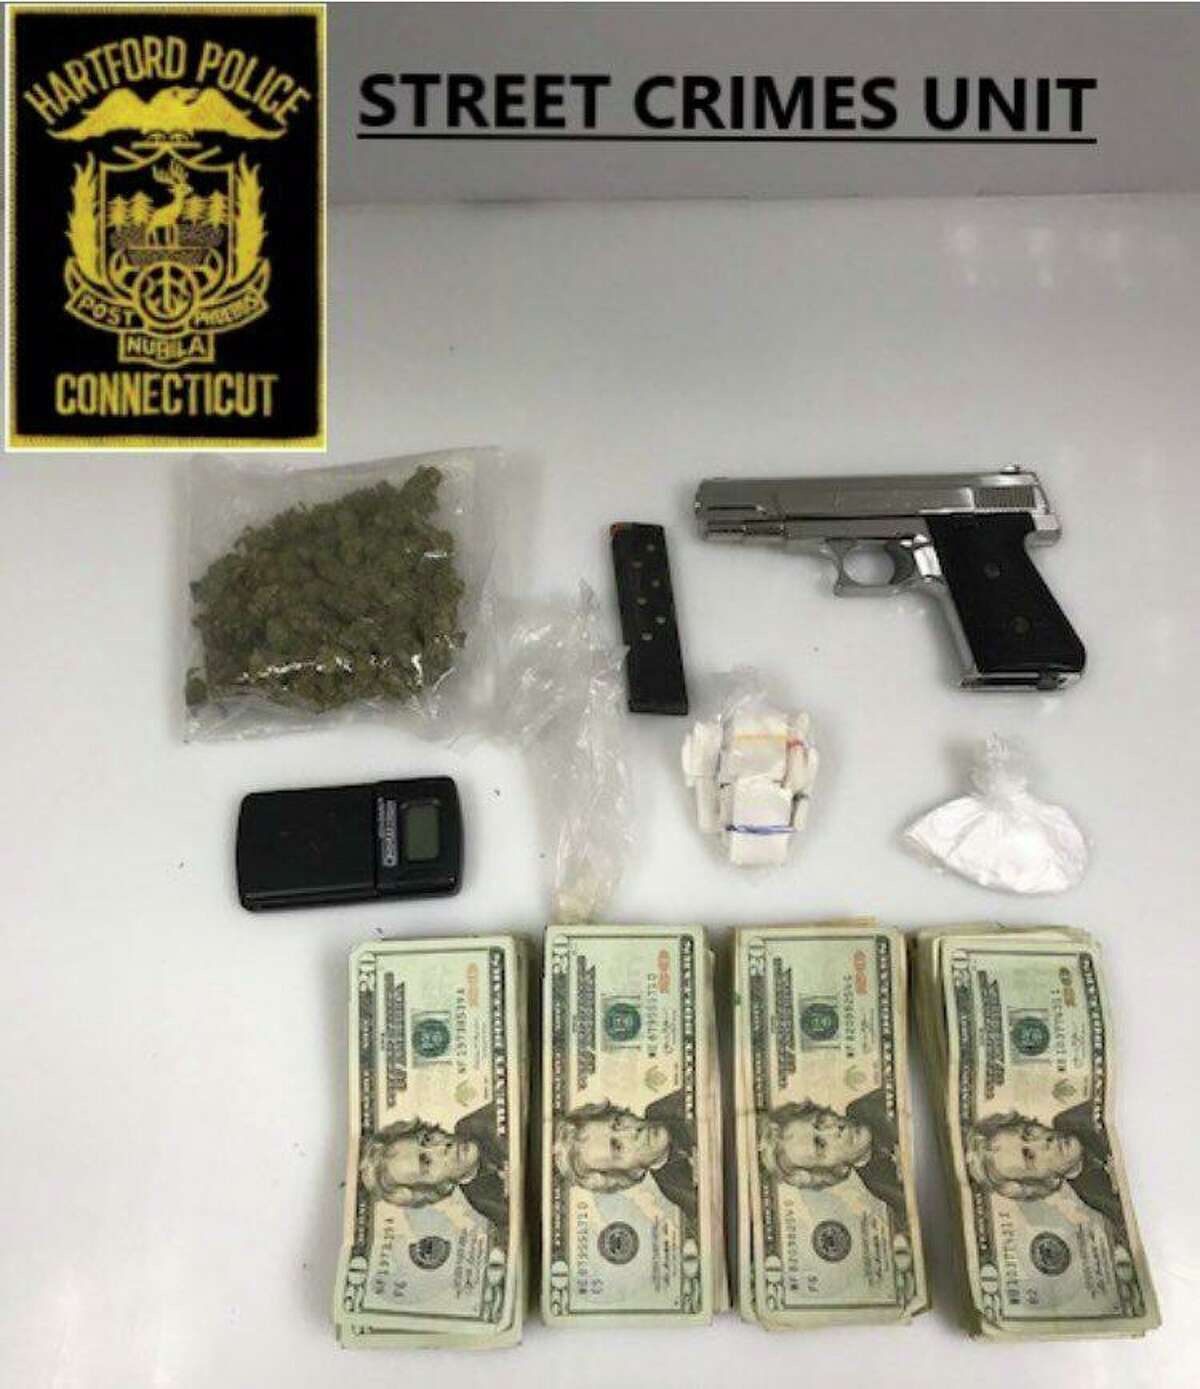 Hartford Police seized cash, a gun and a significant amount of drugs during a traffic stop.